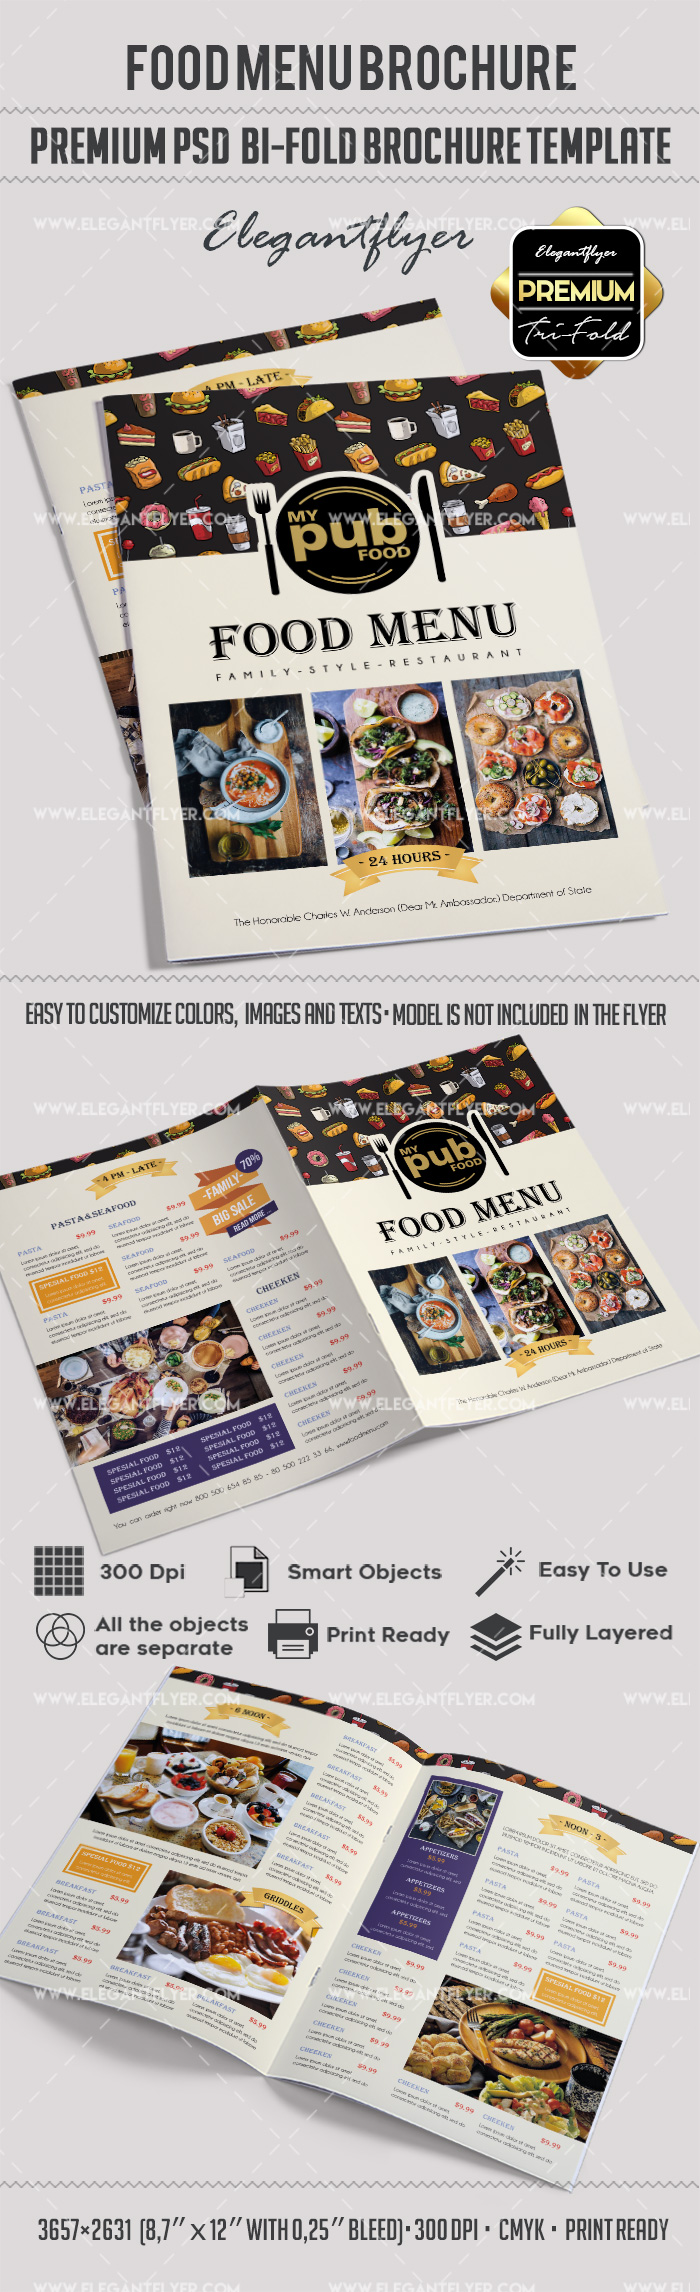 Food menu brochure template by elegantflyer for Free food brochure templates